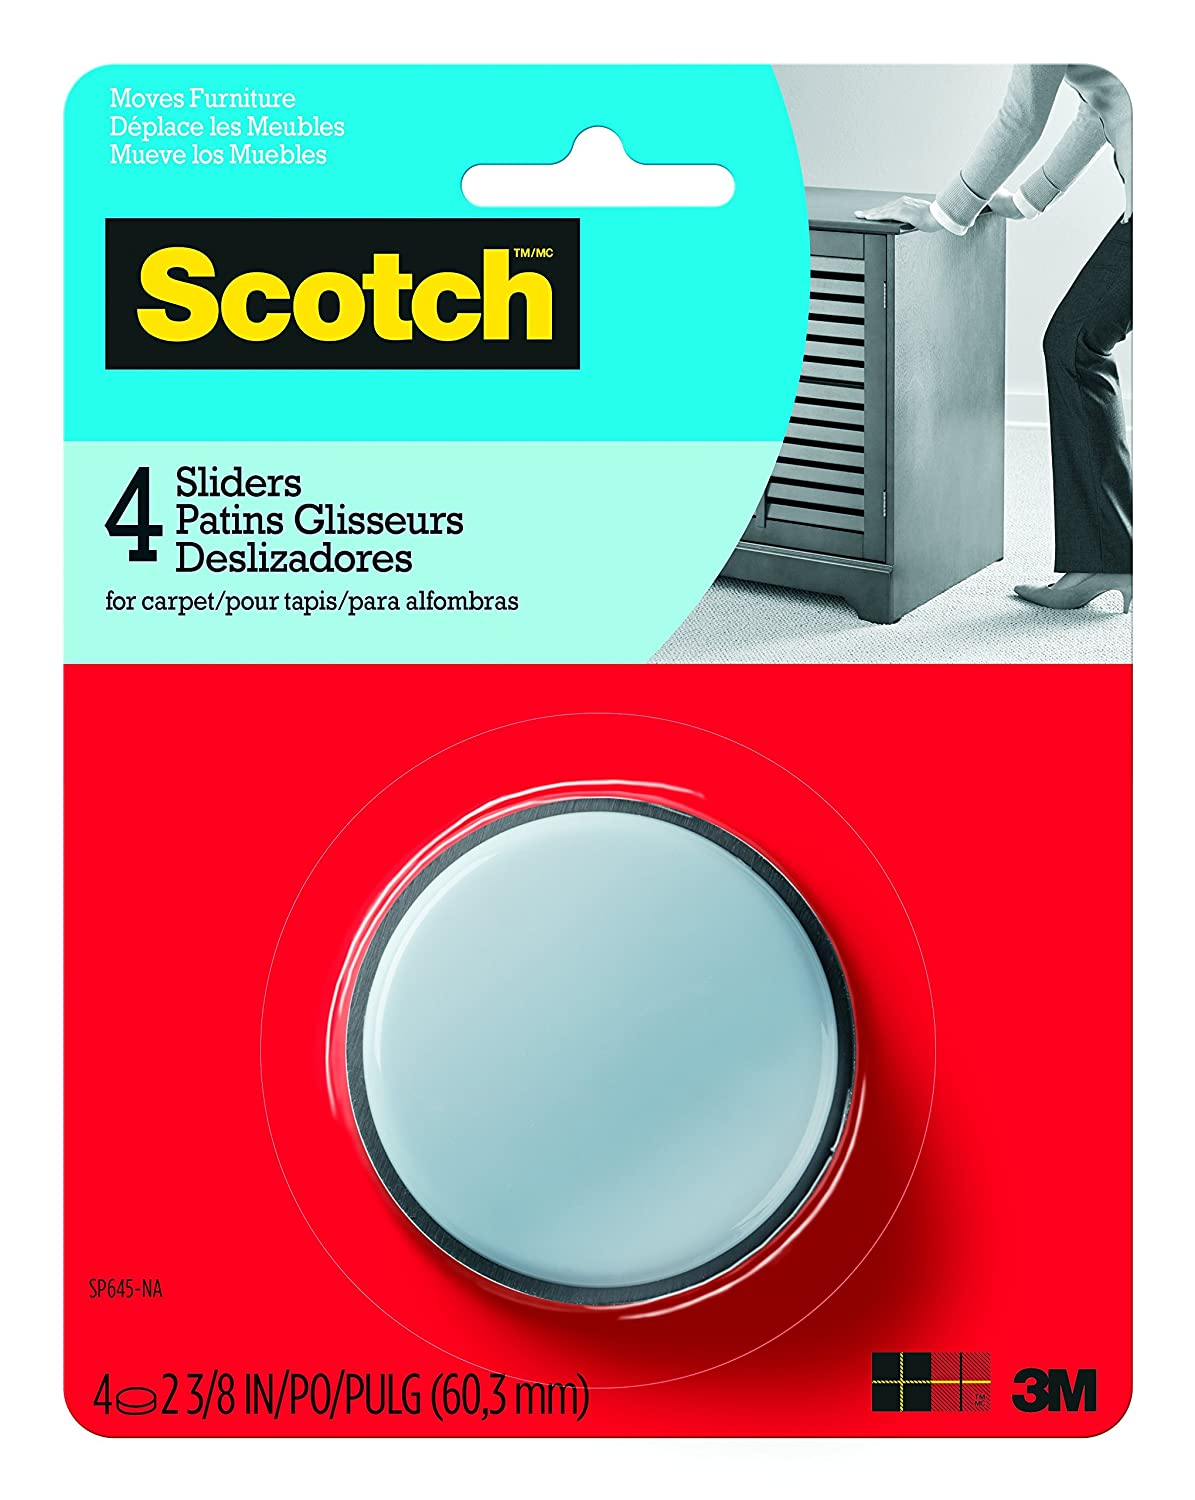 Scotch Mounting, Fastening & Surface Protection SP645-NA Scotch, 2 3/8 in, 4 Self-Stick Sliders